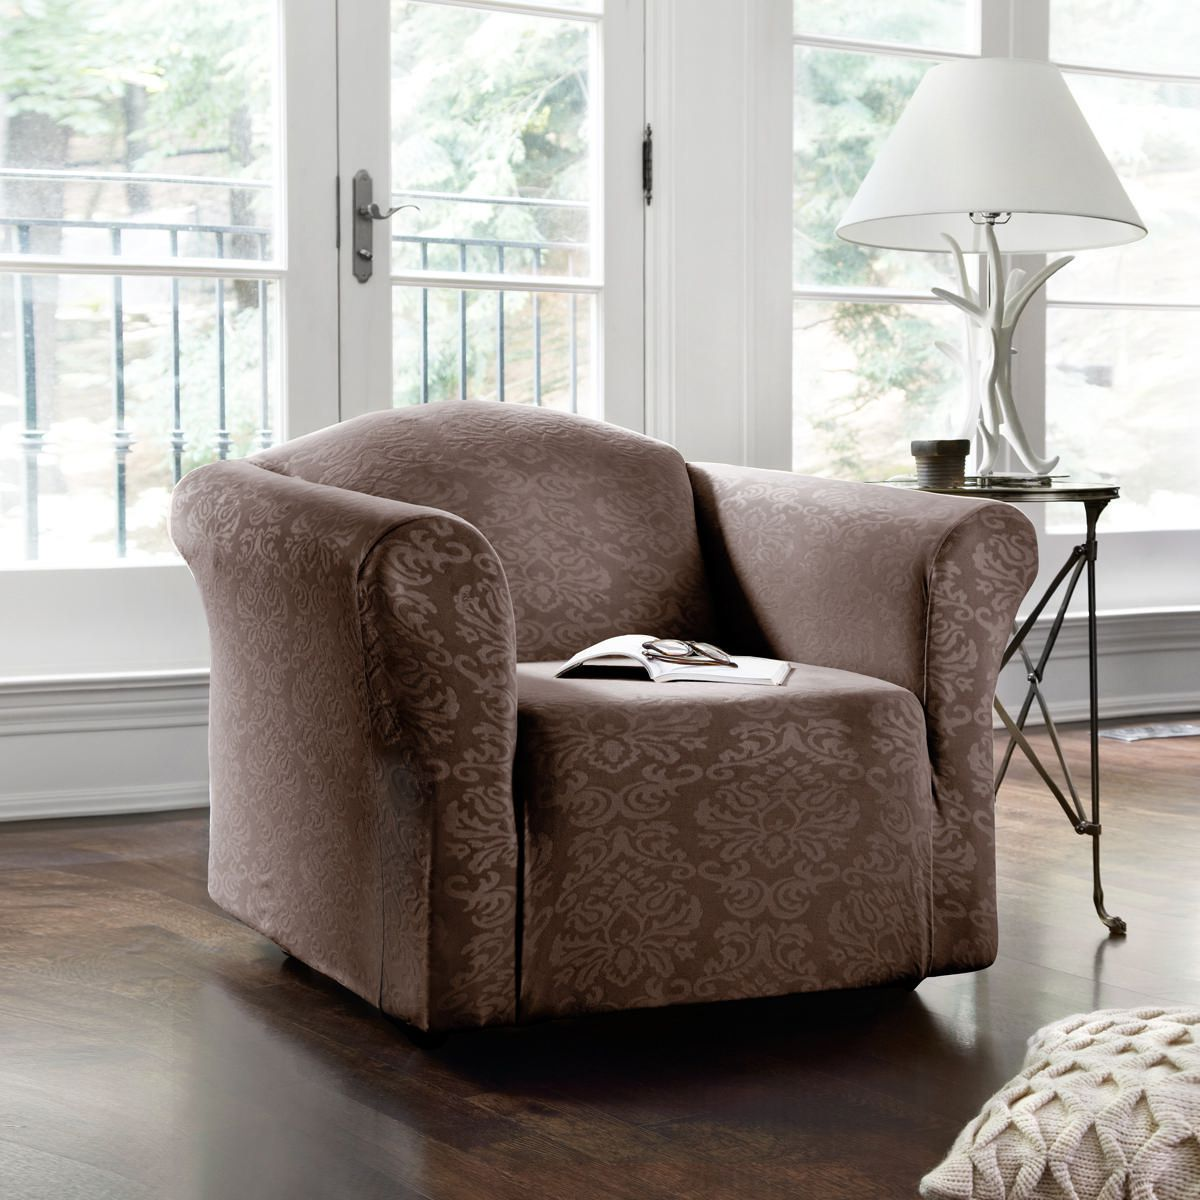 Damask Chair Surefit Damask Stretch Chair Slipcover